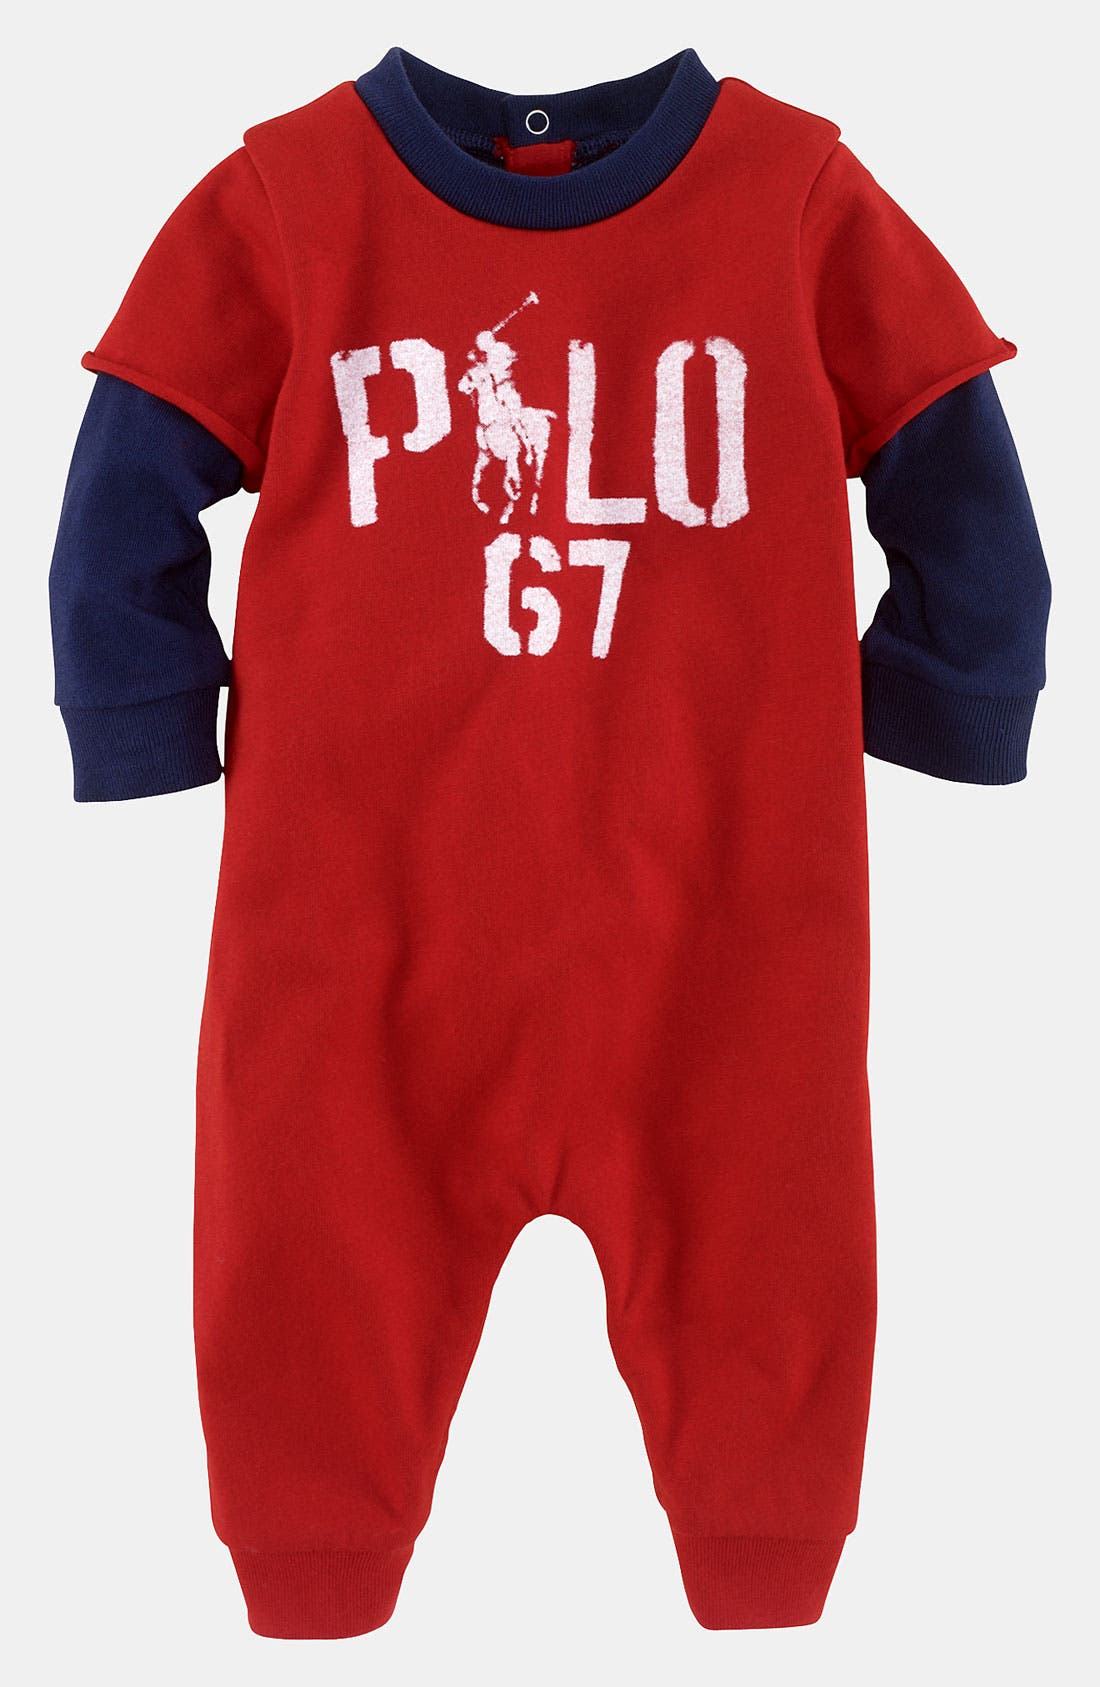 Main Image - Ralph Lauren Layered Sleeve Romper (Infant)